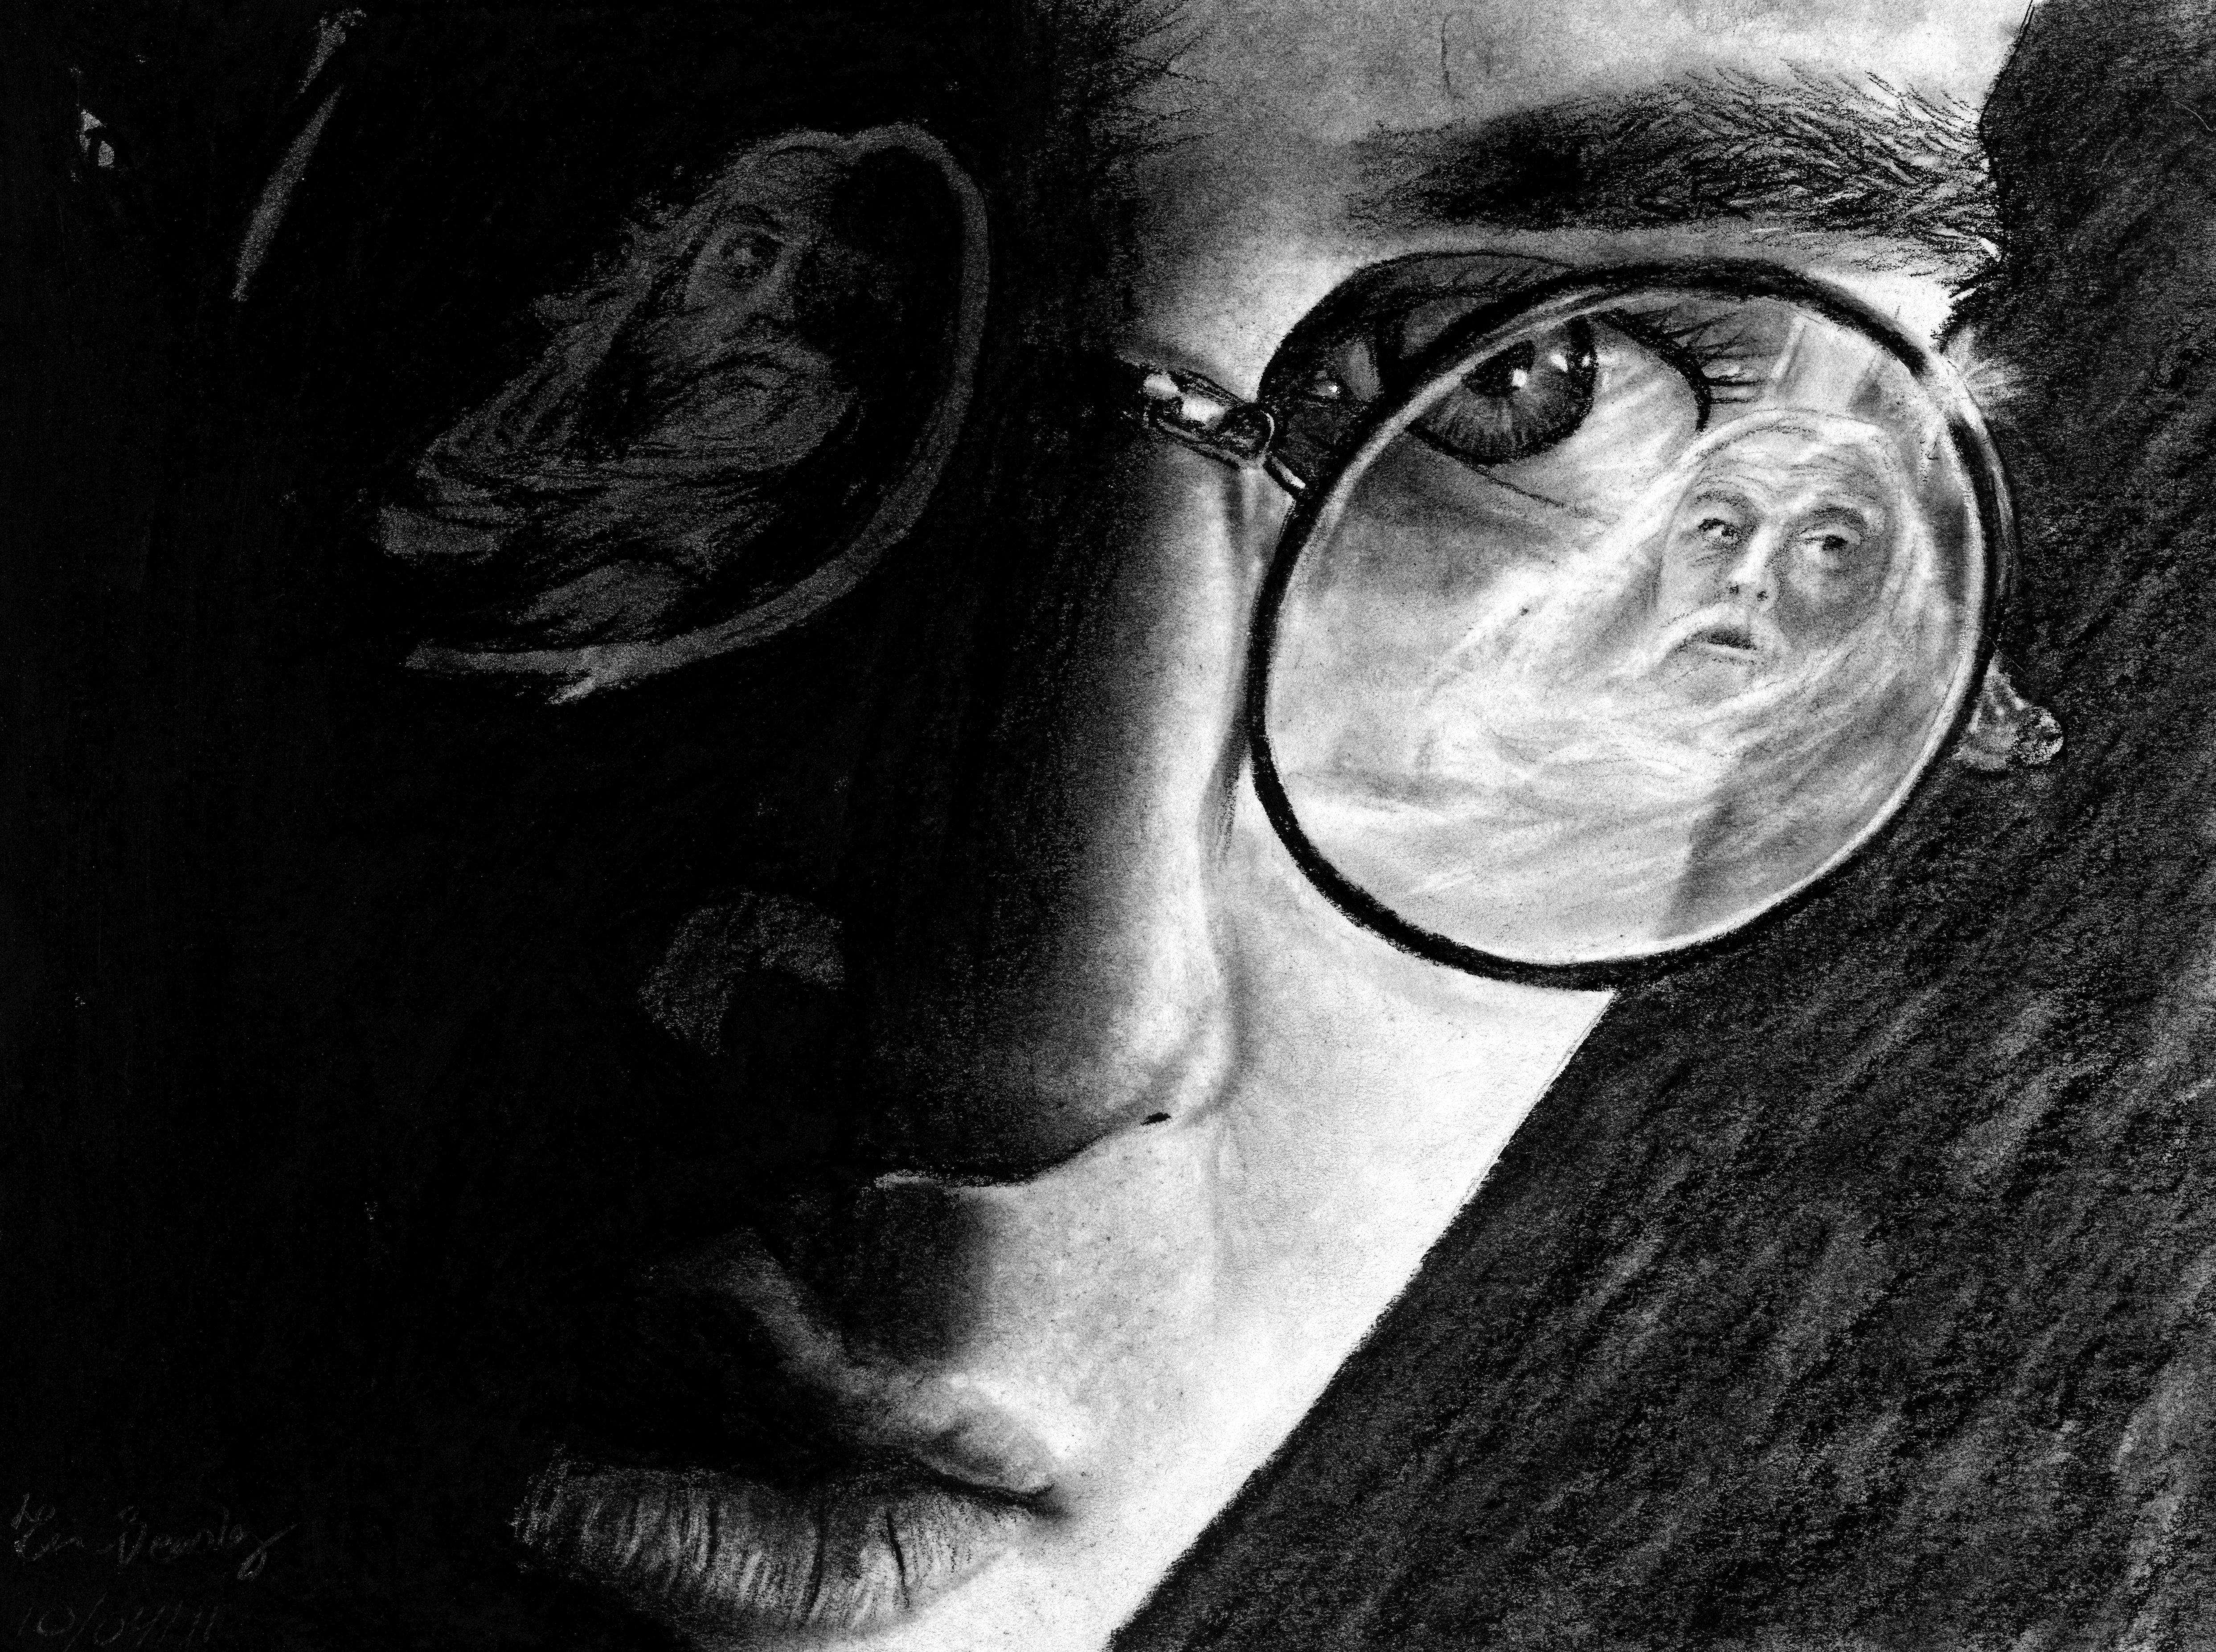 """A DRAWING of Harry Potter, done with charcoal. Check out my """"Artwork"""" board for more of my drawings!"""